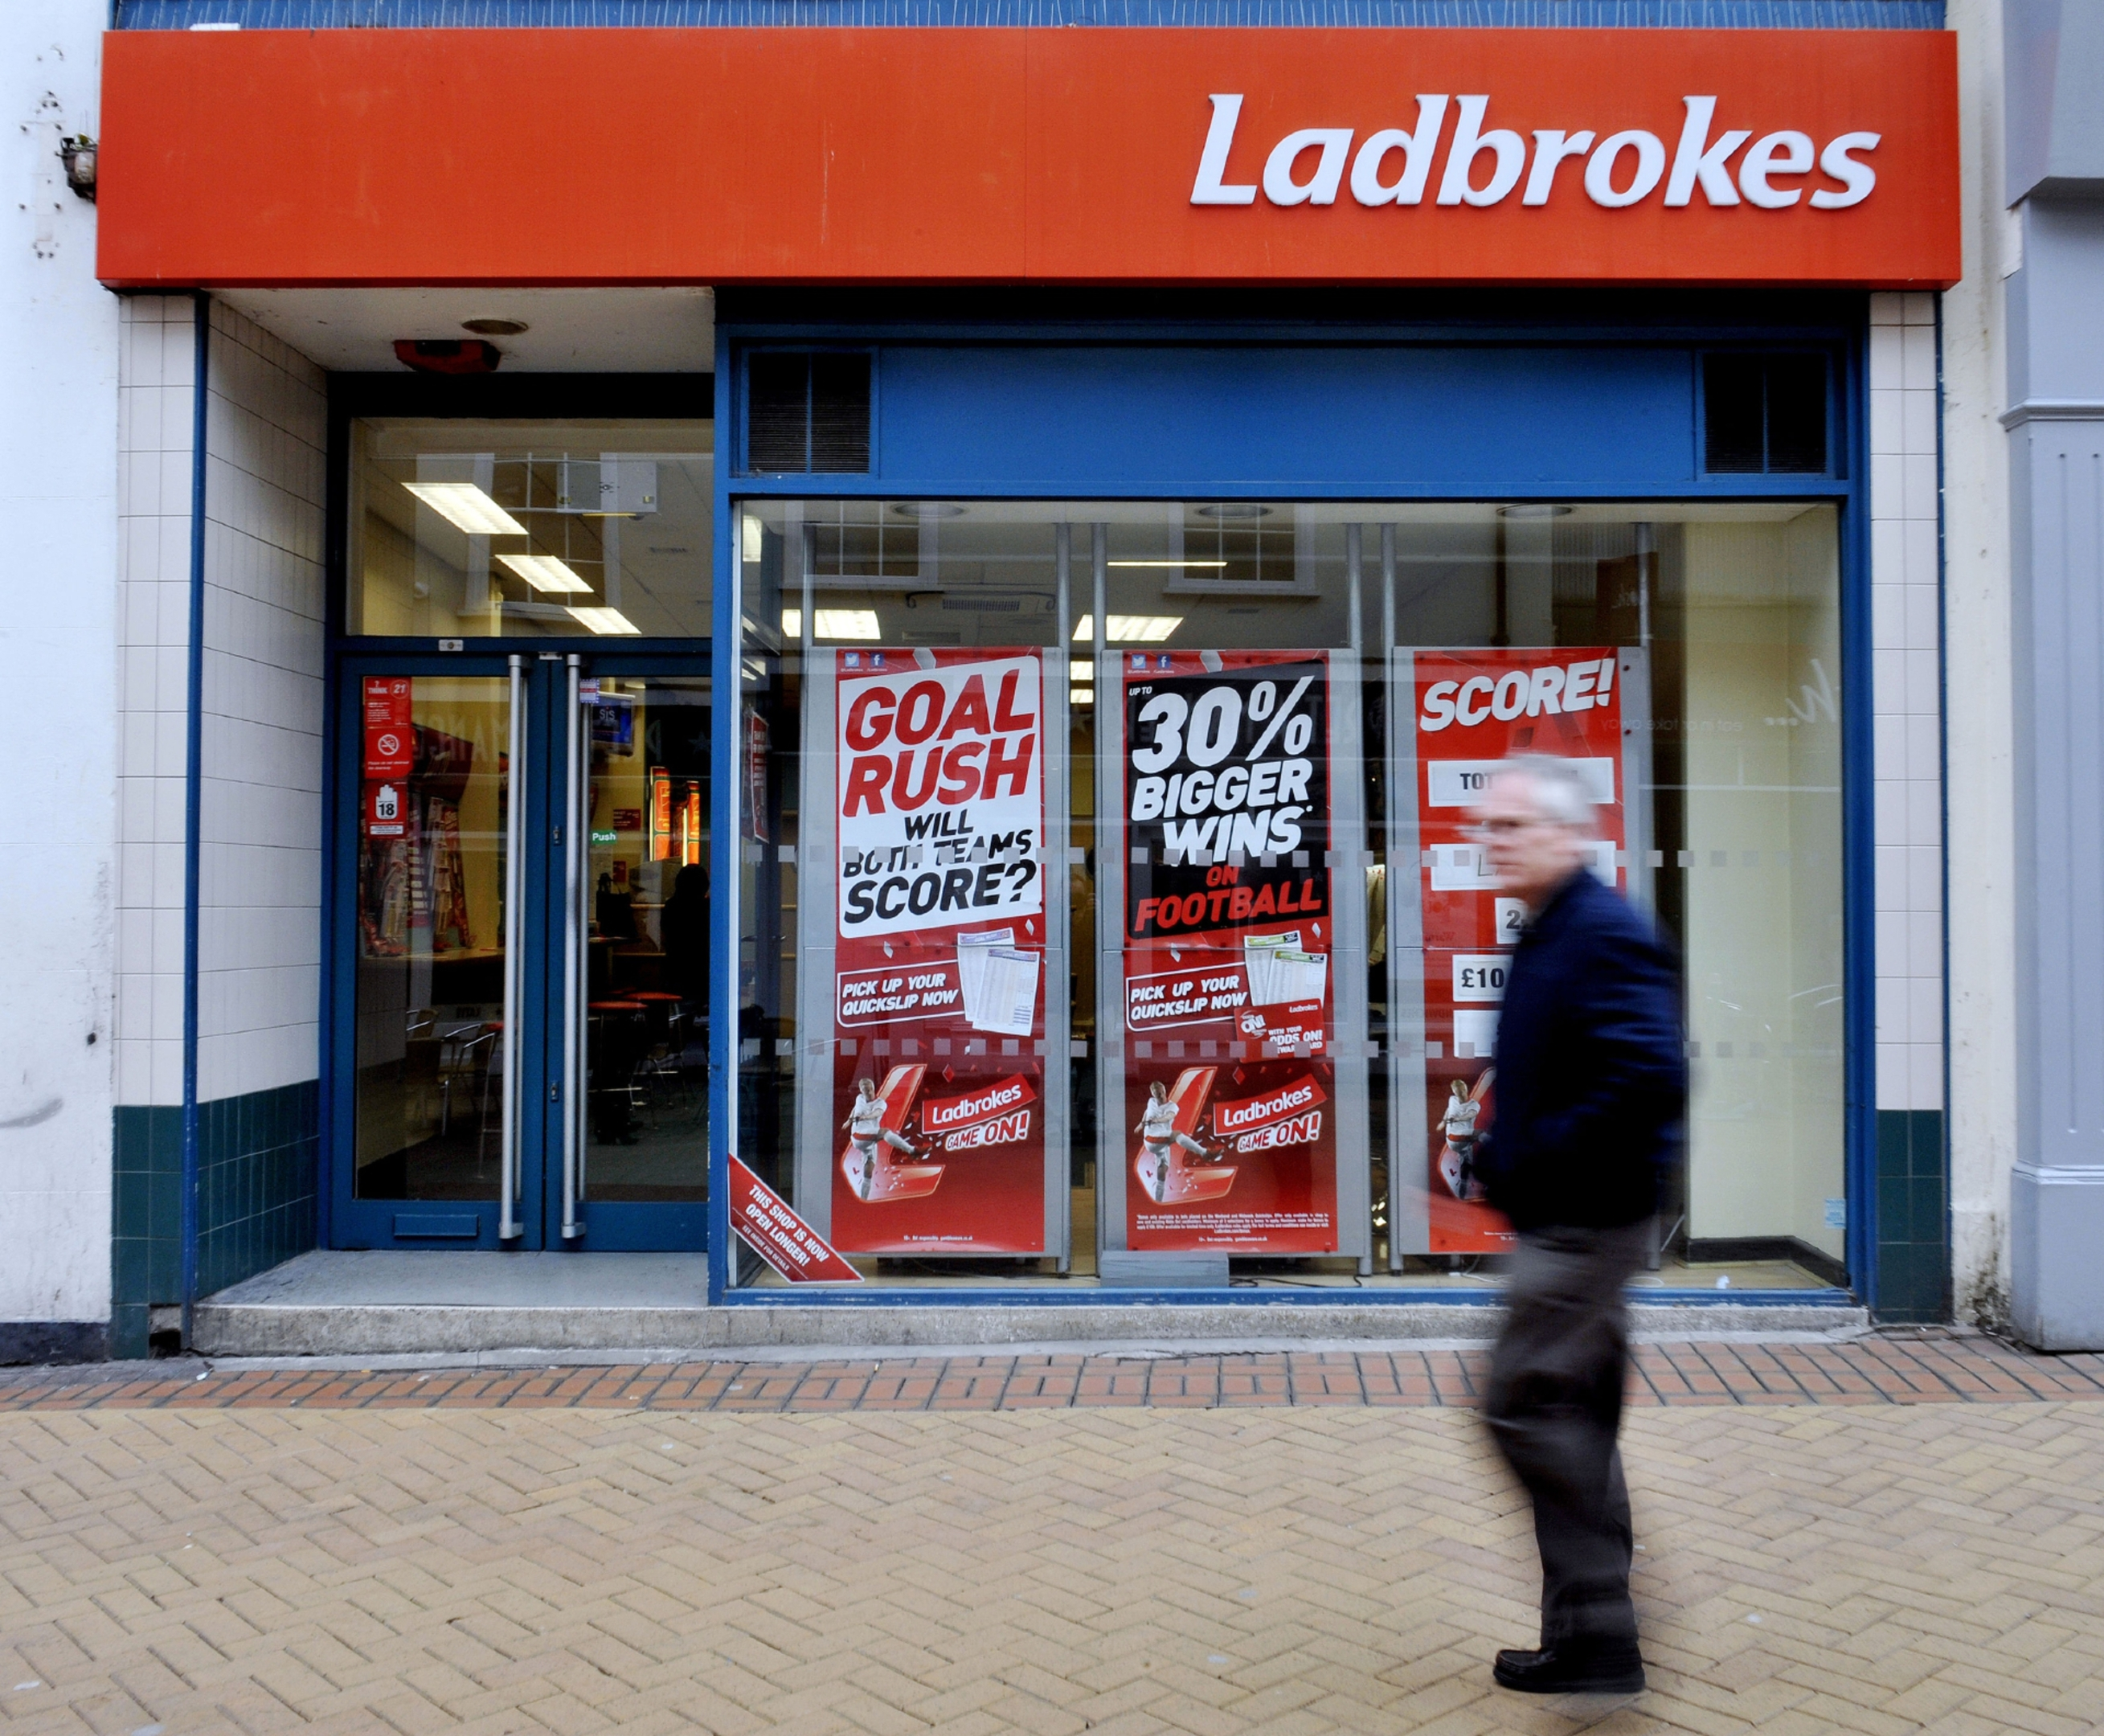 Ladbrokes is progressing plans for a merger with rival Coral